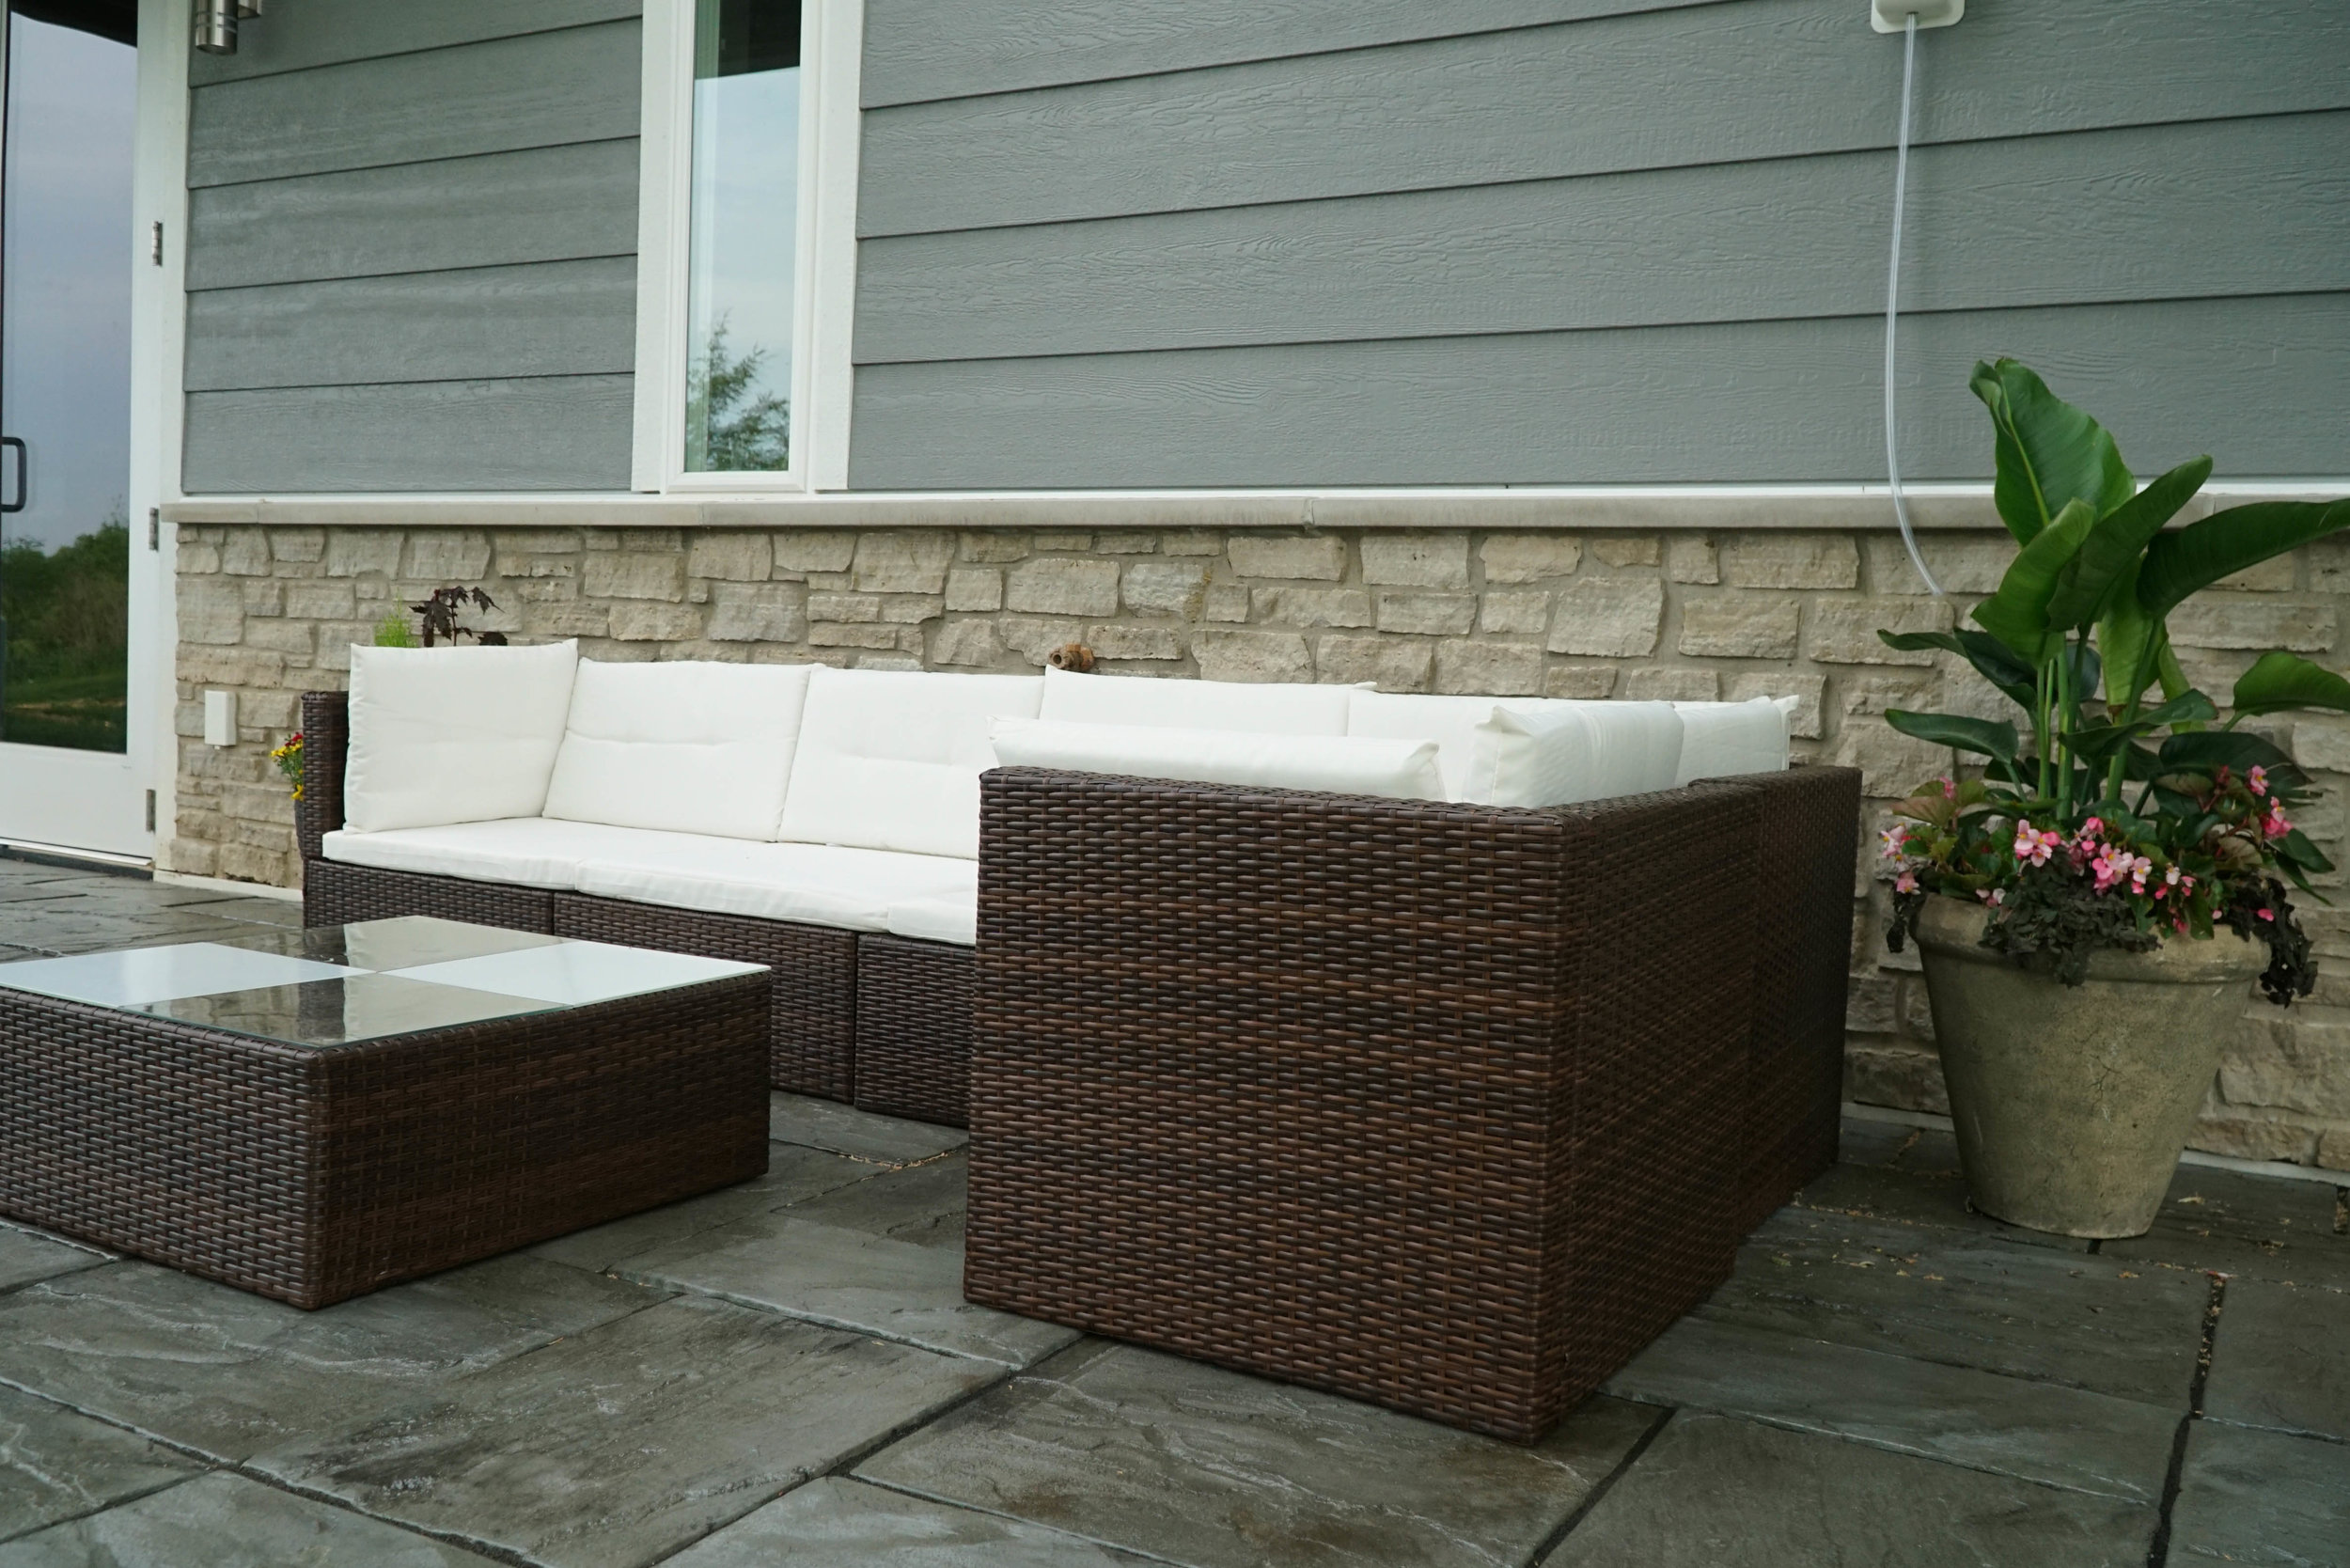 Monte Carlo's spacious patio space is perfect for warm summer nights in Elkhart Lake